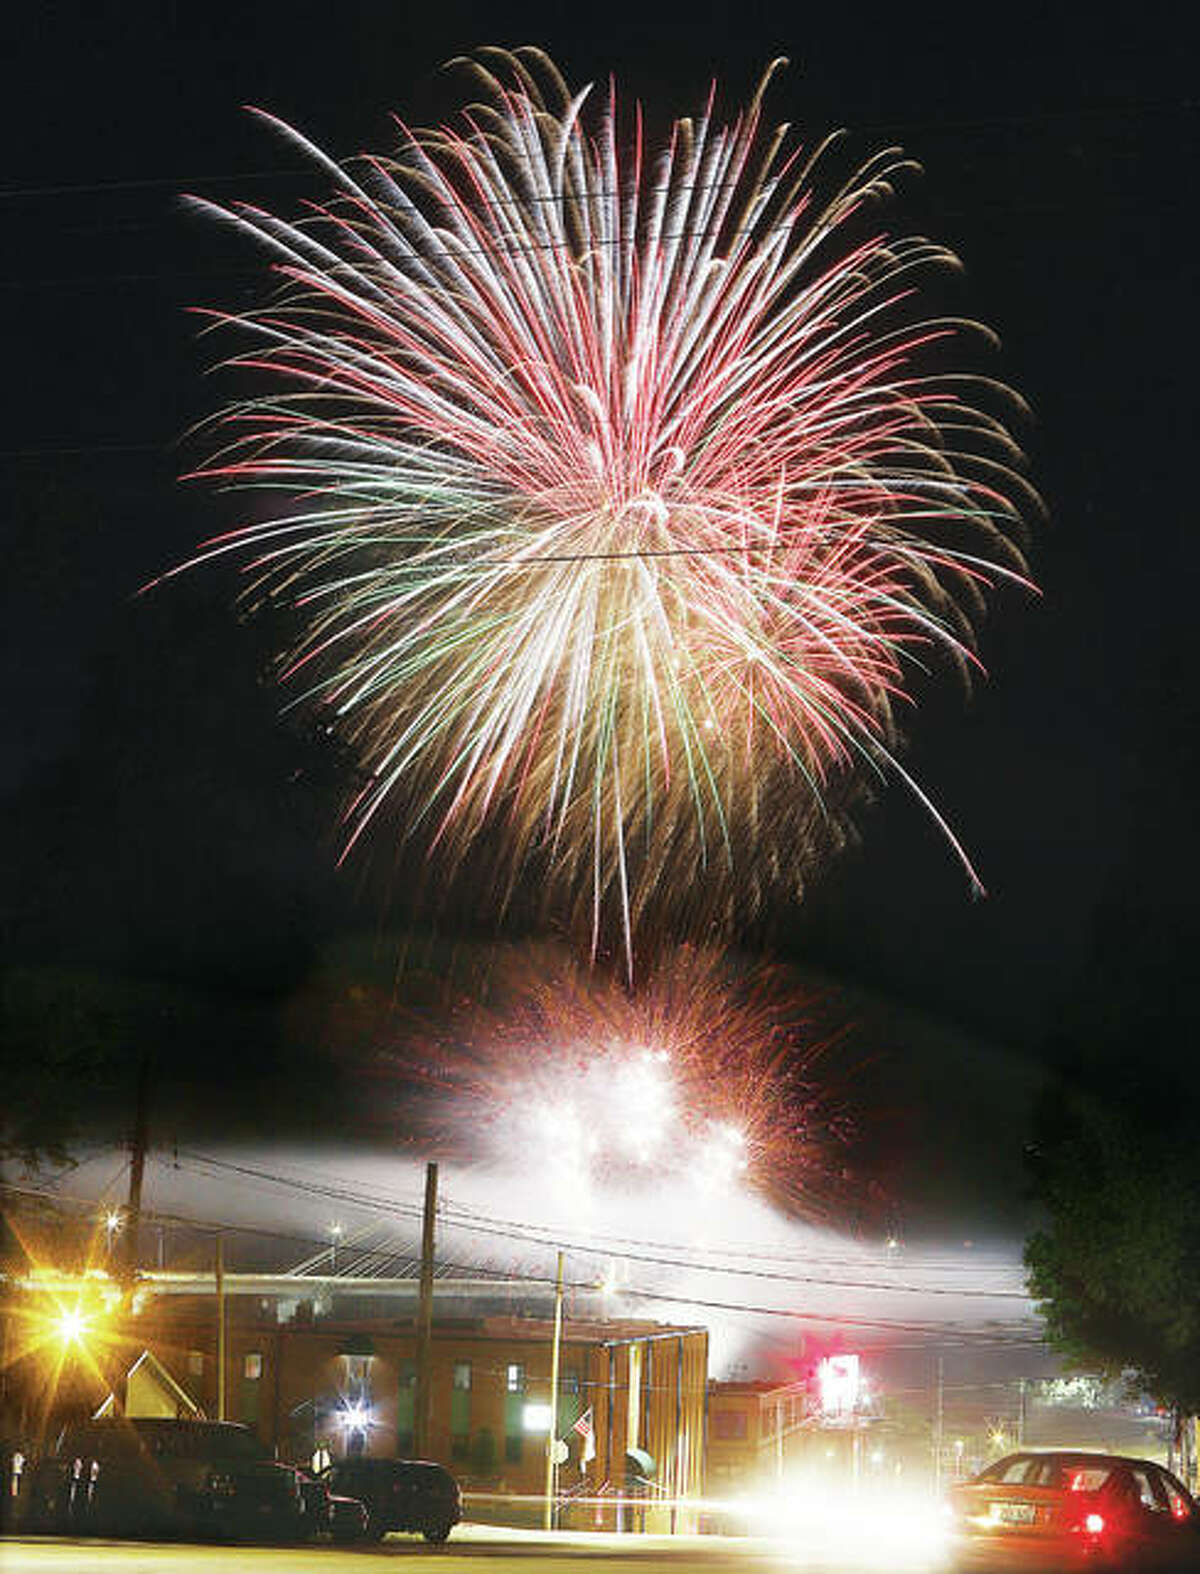 Additional photos from Thursday's fireworks and Night Market in Alton